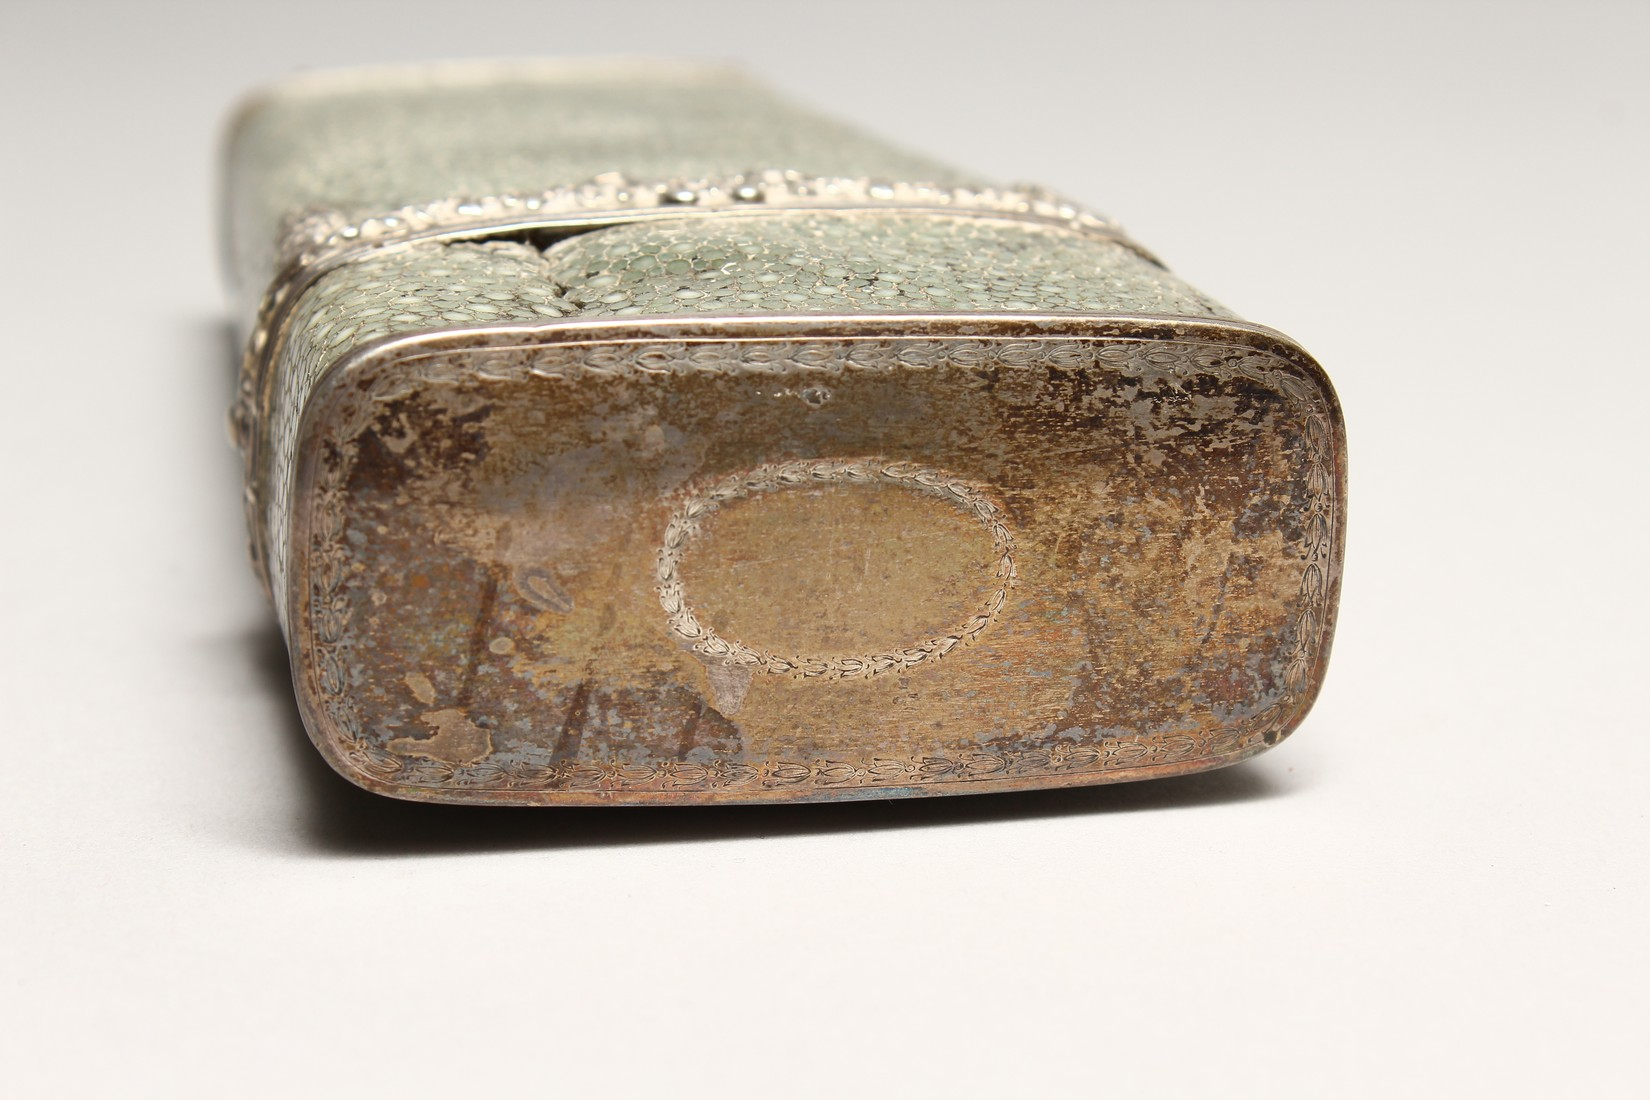 A GEORGIAN WHISKY FLASK in a shagreen case, with silver garlands 6.5ins long (some damage). - Image 6 of 8